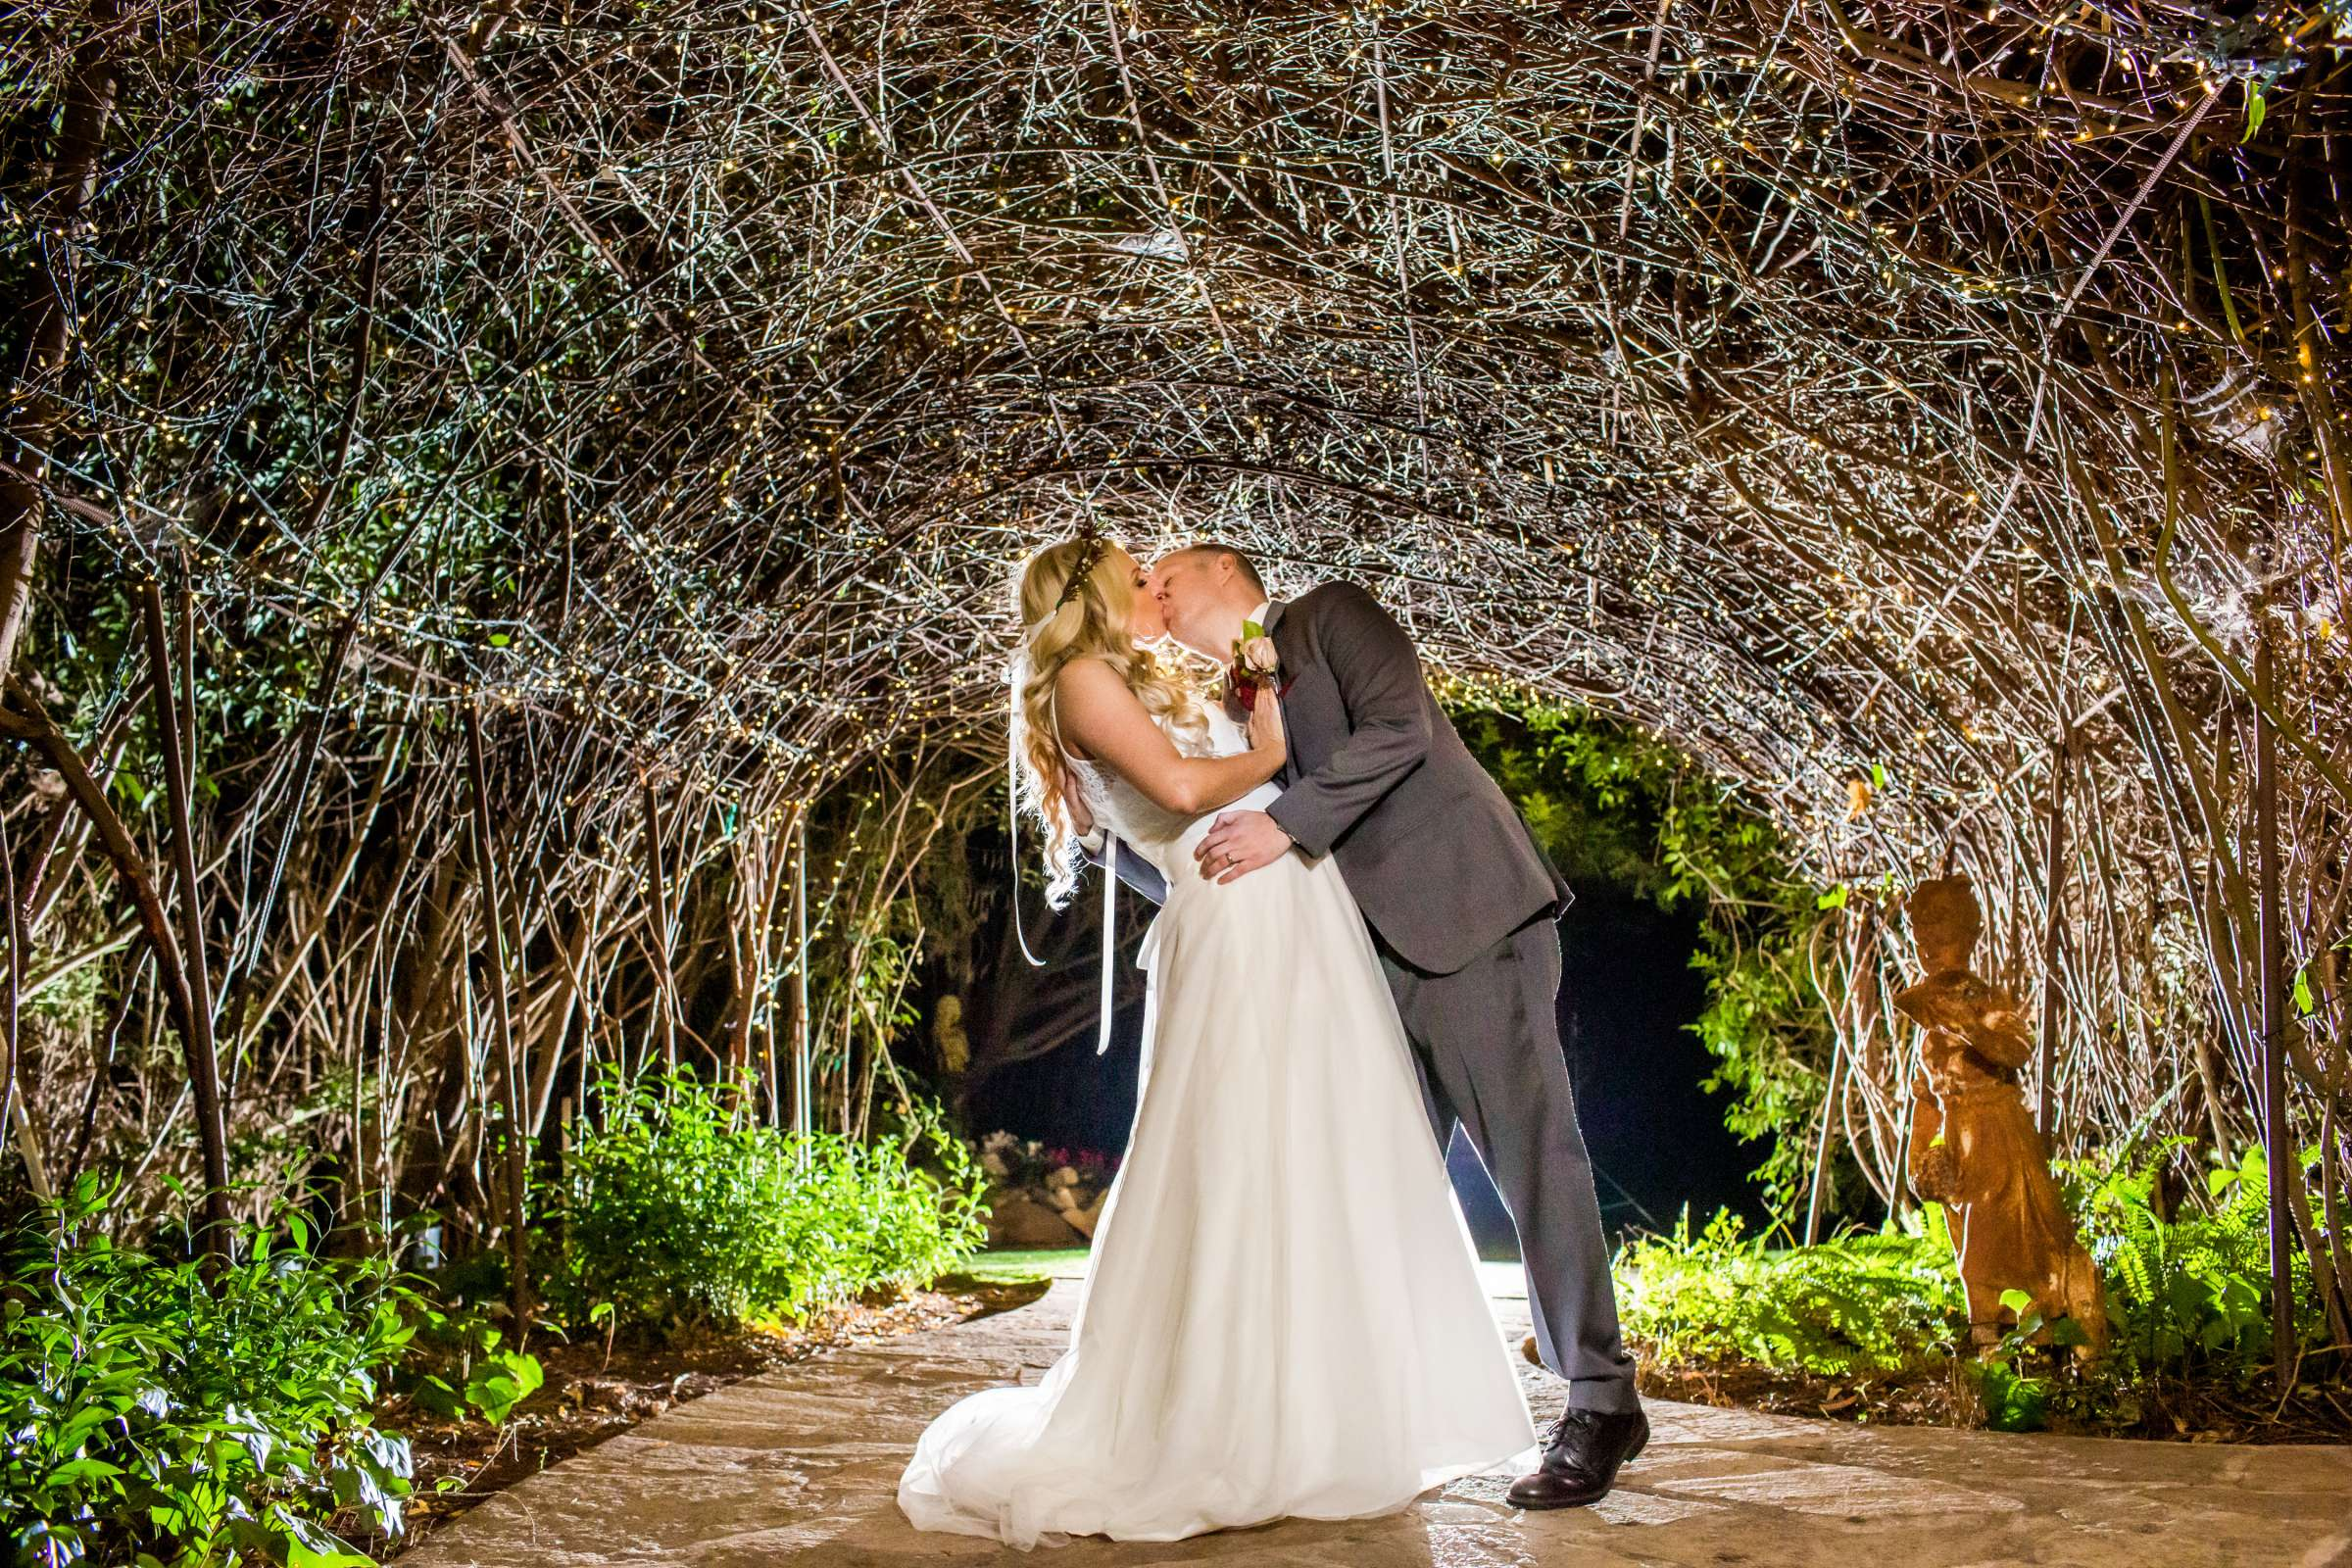 Twin Oaks House & Gardens Wedding Estate Wedding, Brittany and Sean Wedding Photo #1 by True Photography